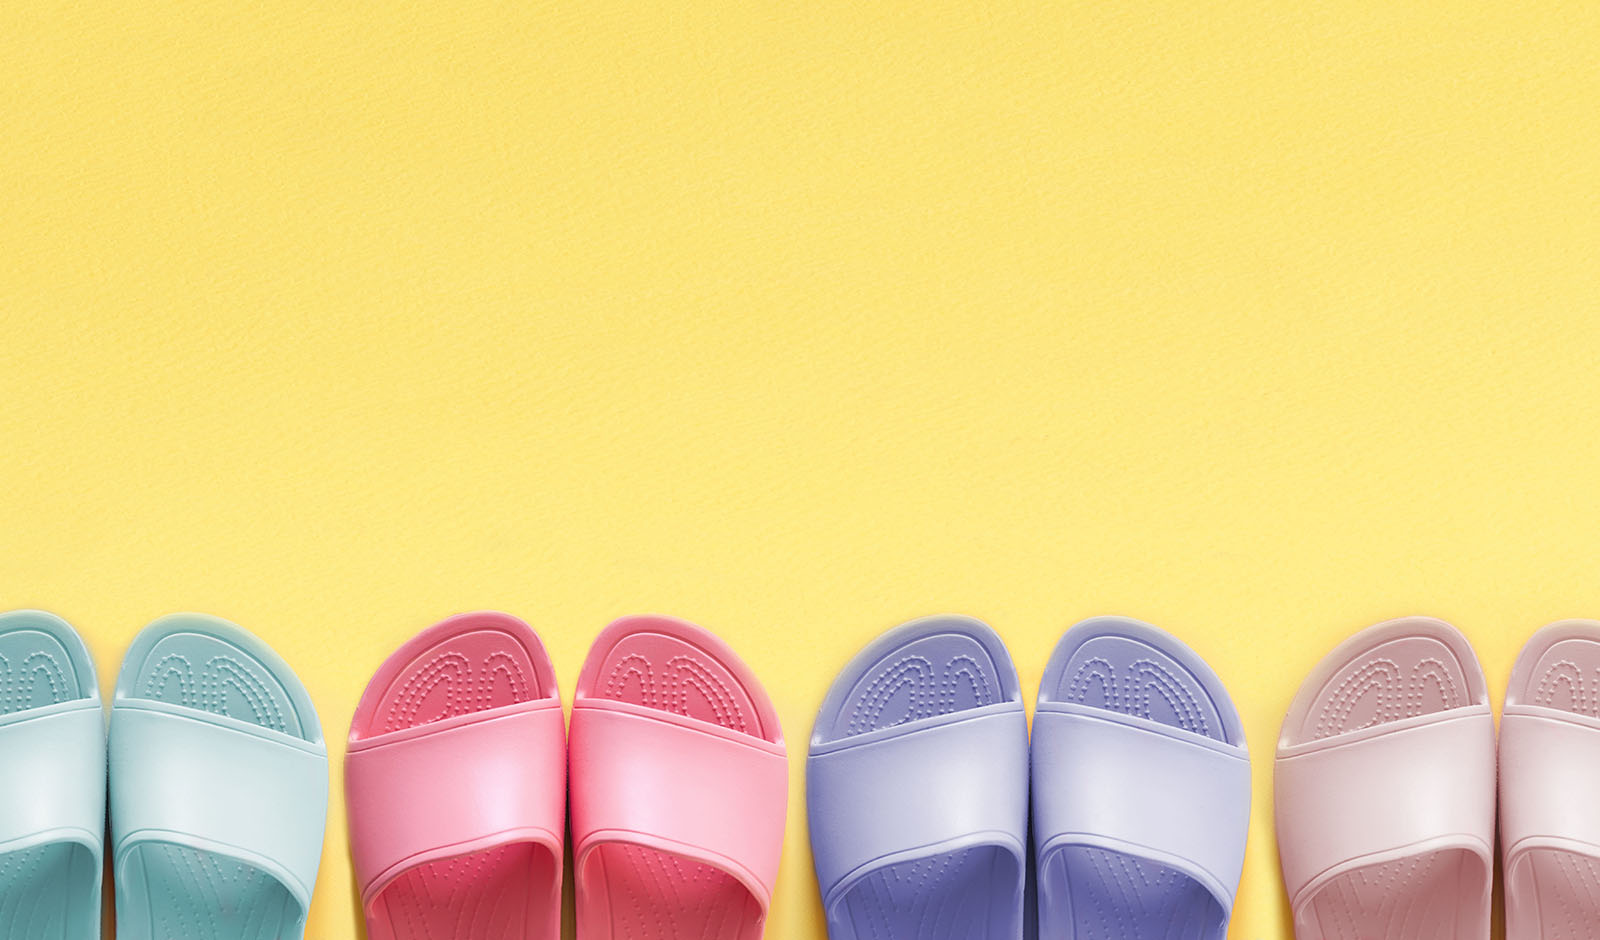 An even row of multi-colored slippers at the bottom of the pictu